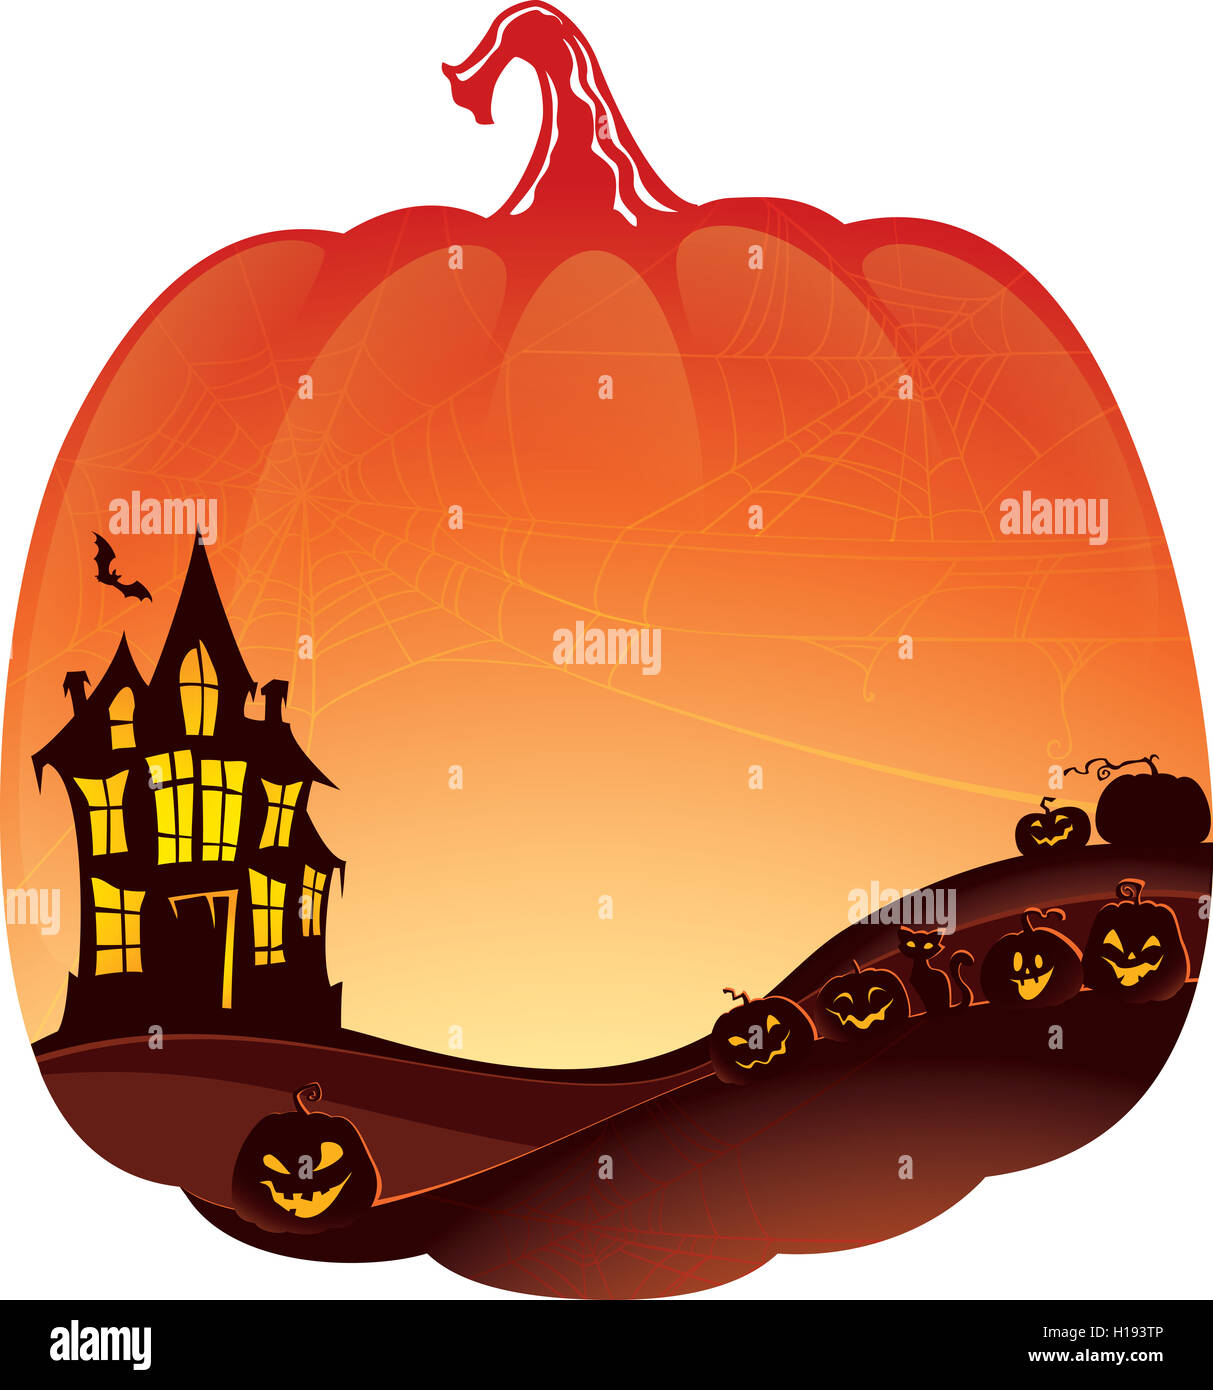 halloween double exposure background with haunted house and pumpkins